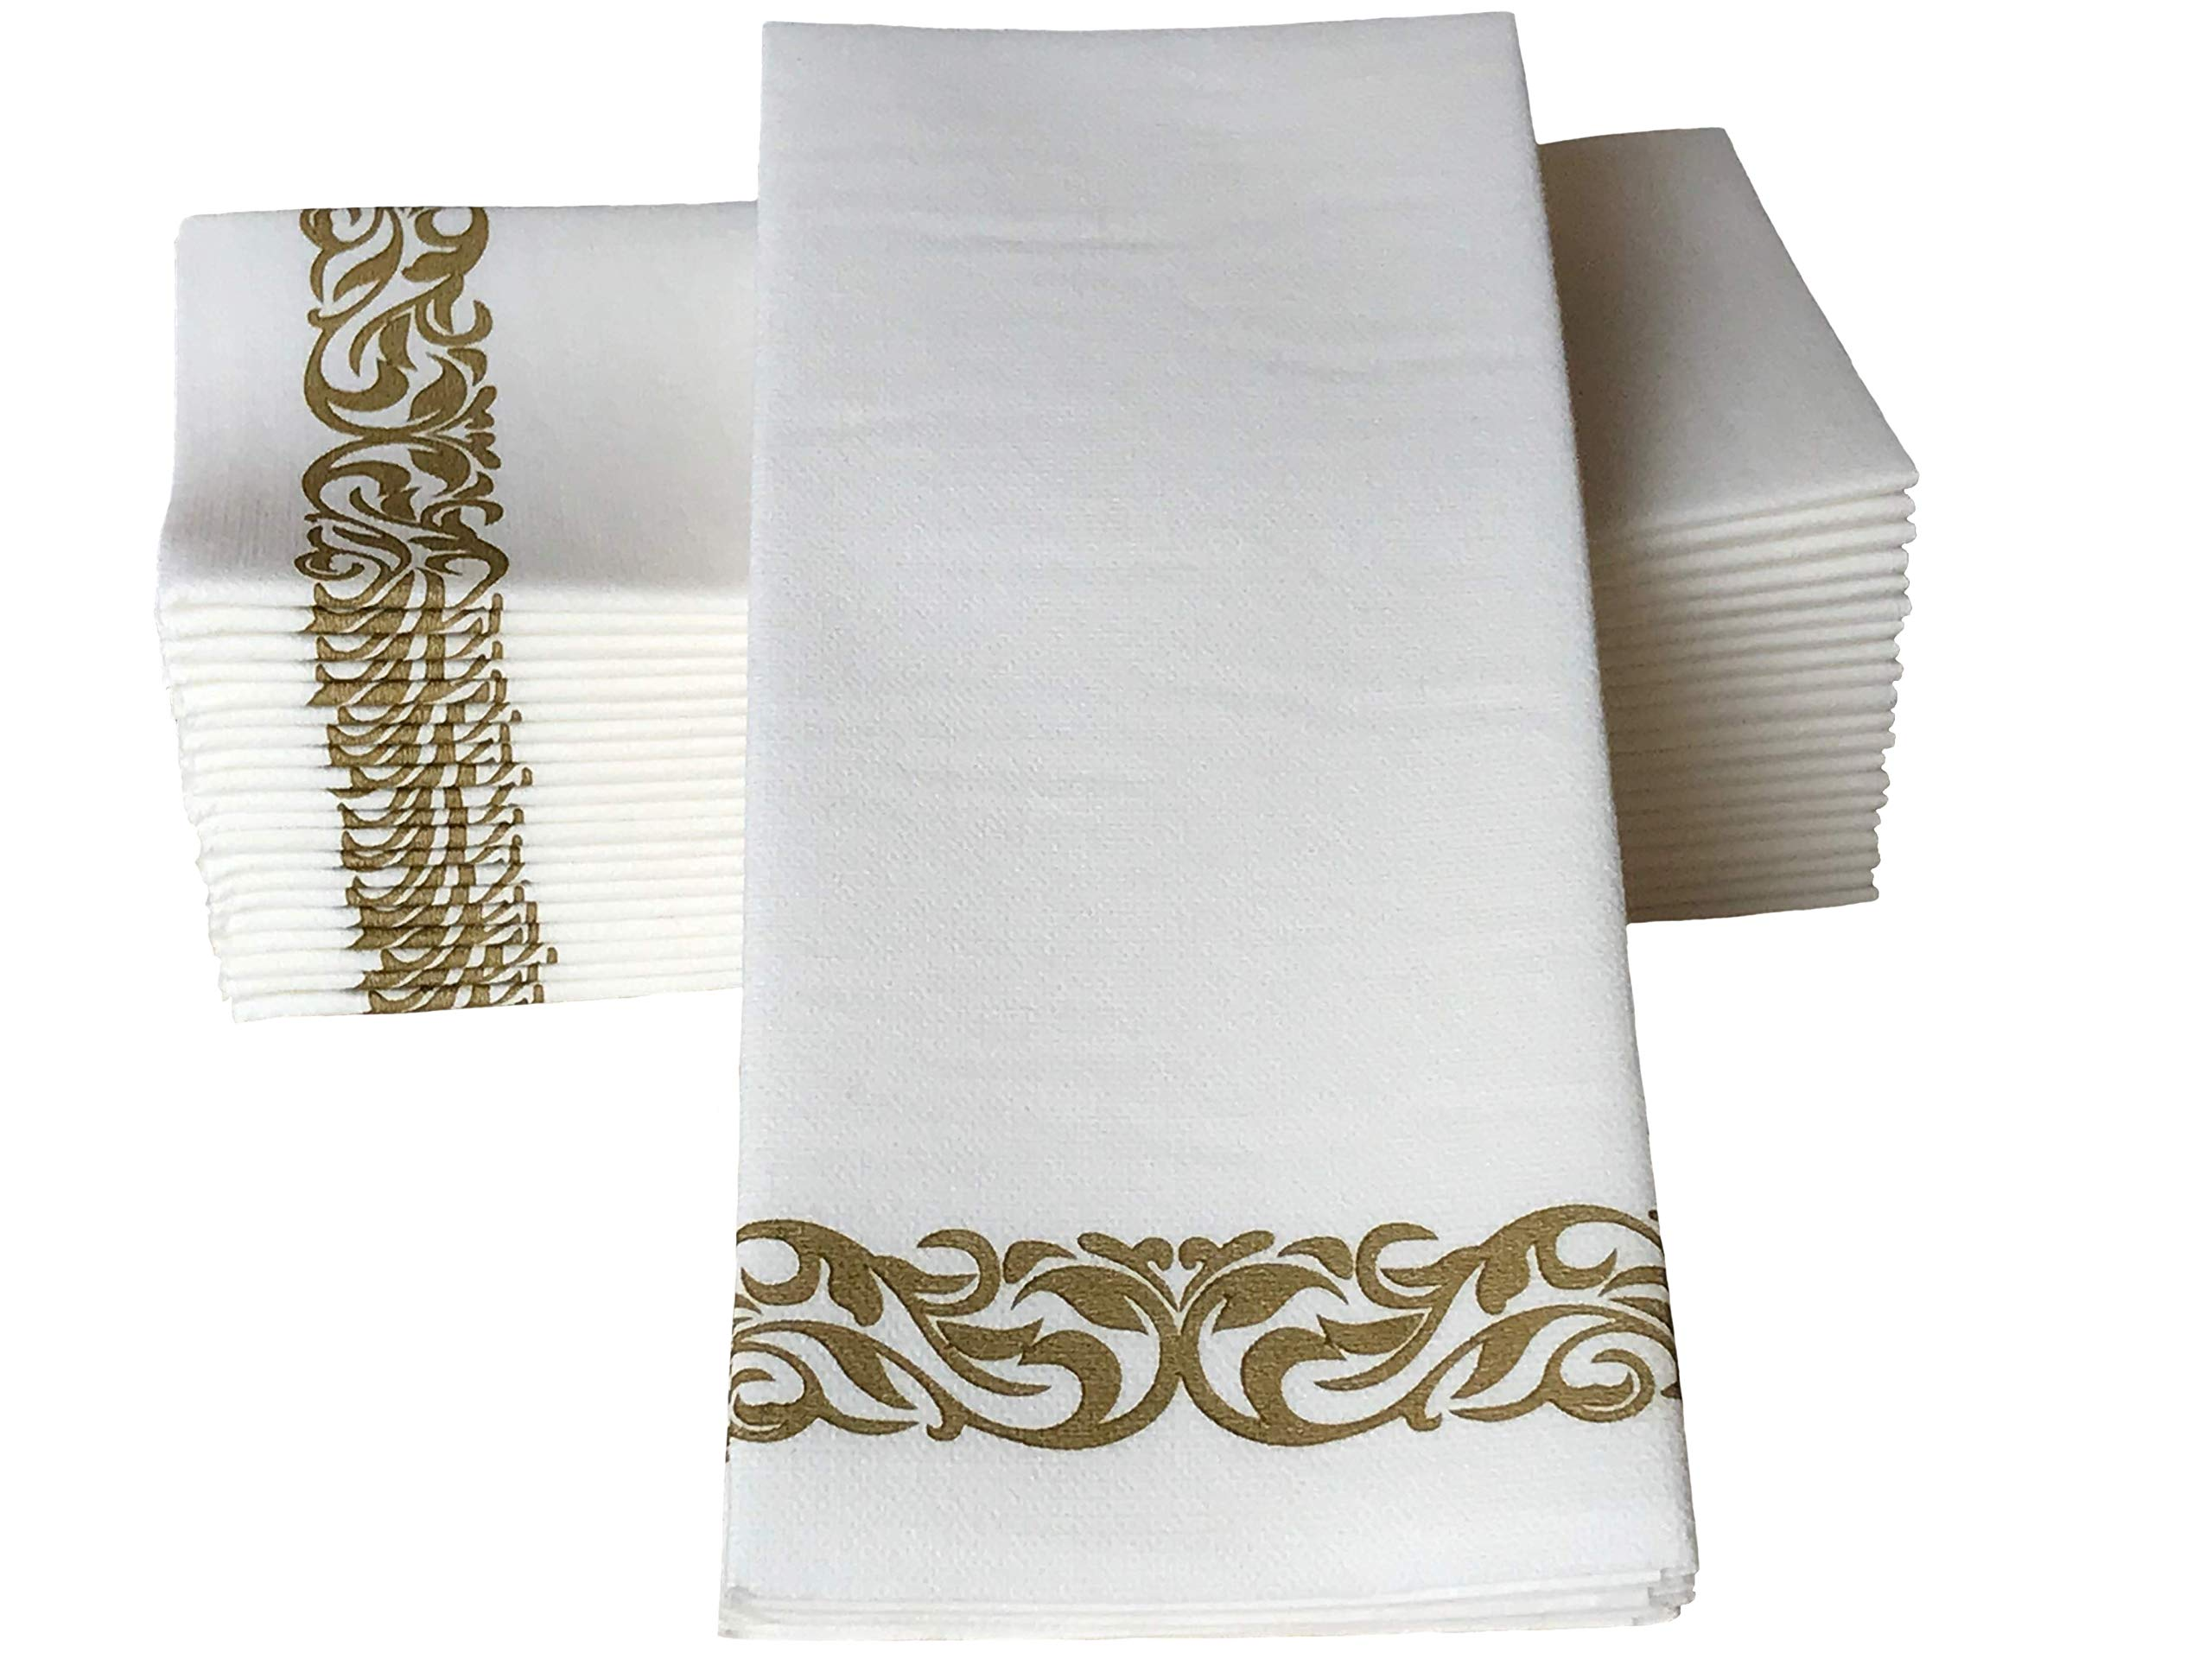 Haven Needs 100 Disposable Decorative Cloth-Like Table Napkins/Bathroom Hand Towels - Strong Yet Soft & Absorbent Premium Paper Guest Towels - Elegant and Luxurious - for Parties Weddings Events by Haven Needs